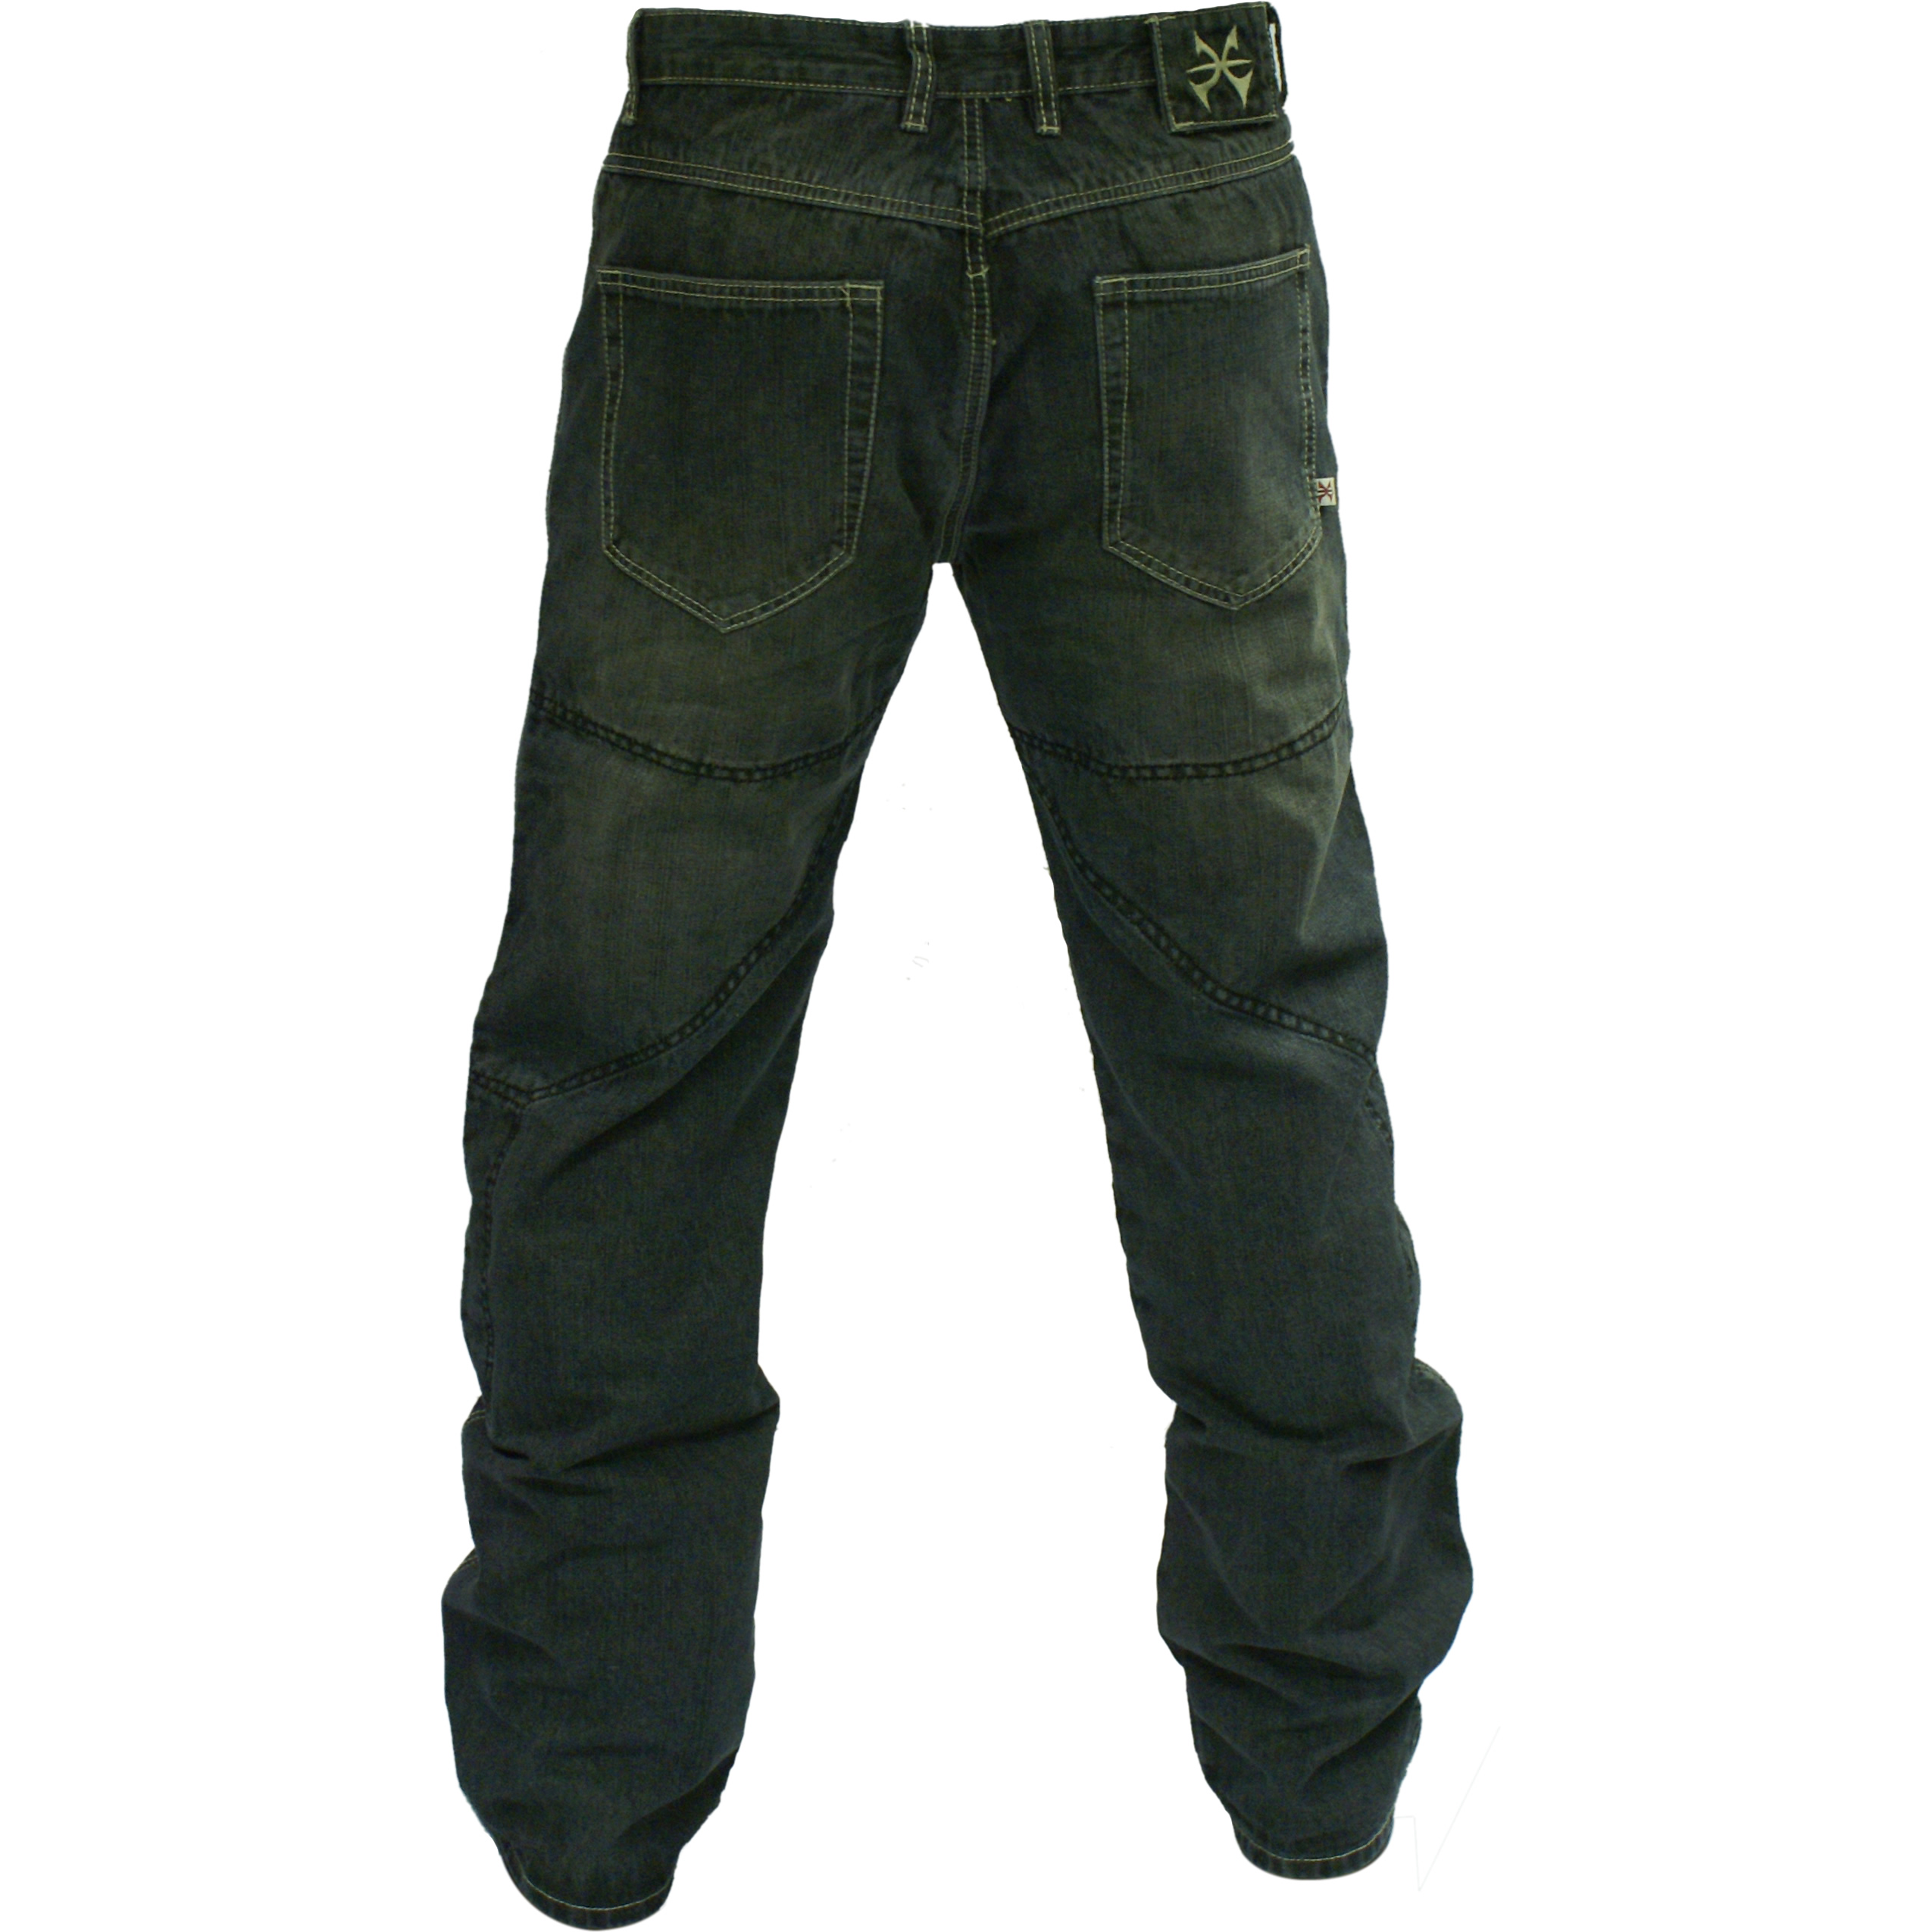 hornee sa m1 kevlar motorcycle bootcut jeans black 32 ebay. Black Bedroom Furniture Sets. Home Design Ideas